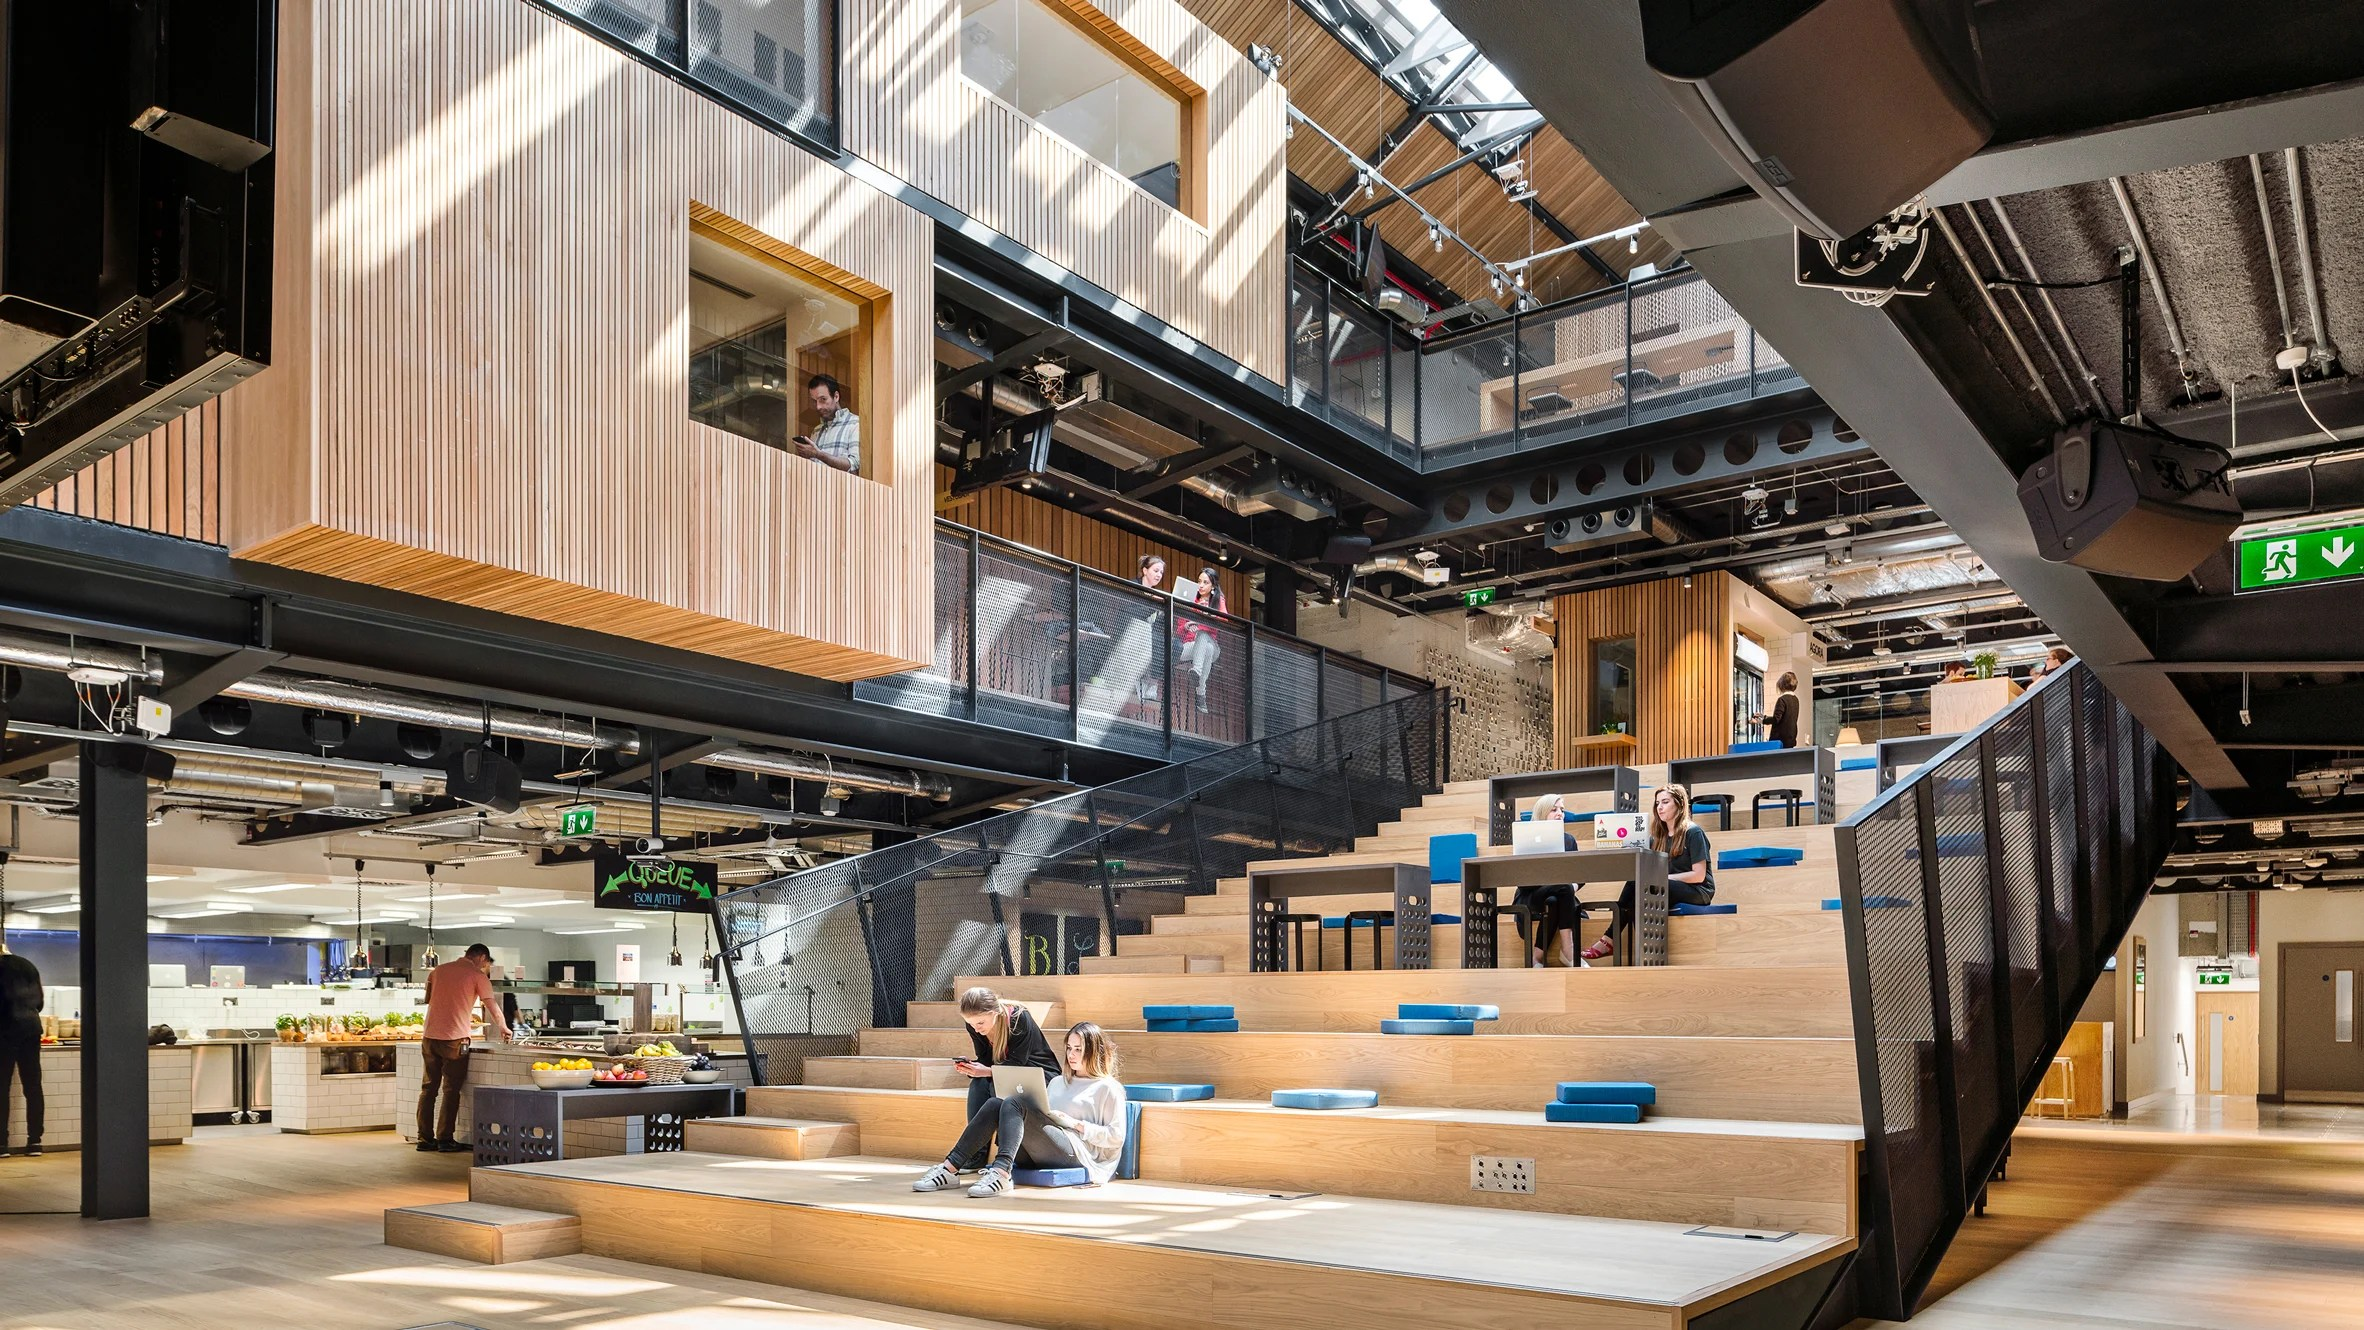 Airbnb Paris 17 Airbnb Unveils New Headquarters In A Disused Dublin Warehouse